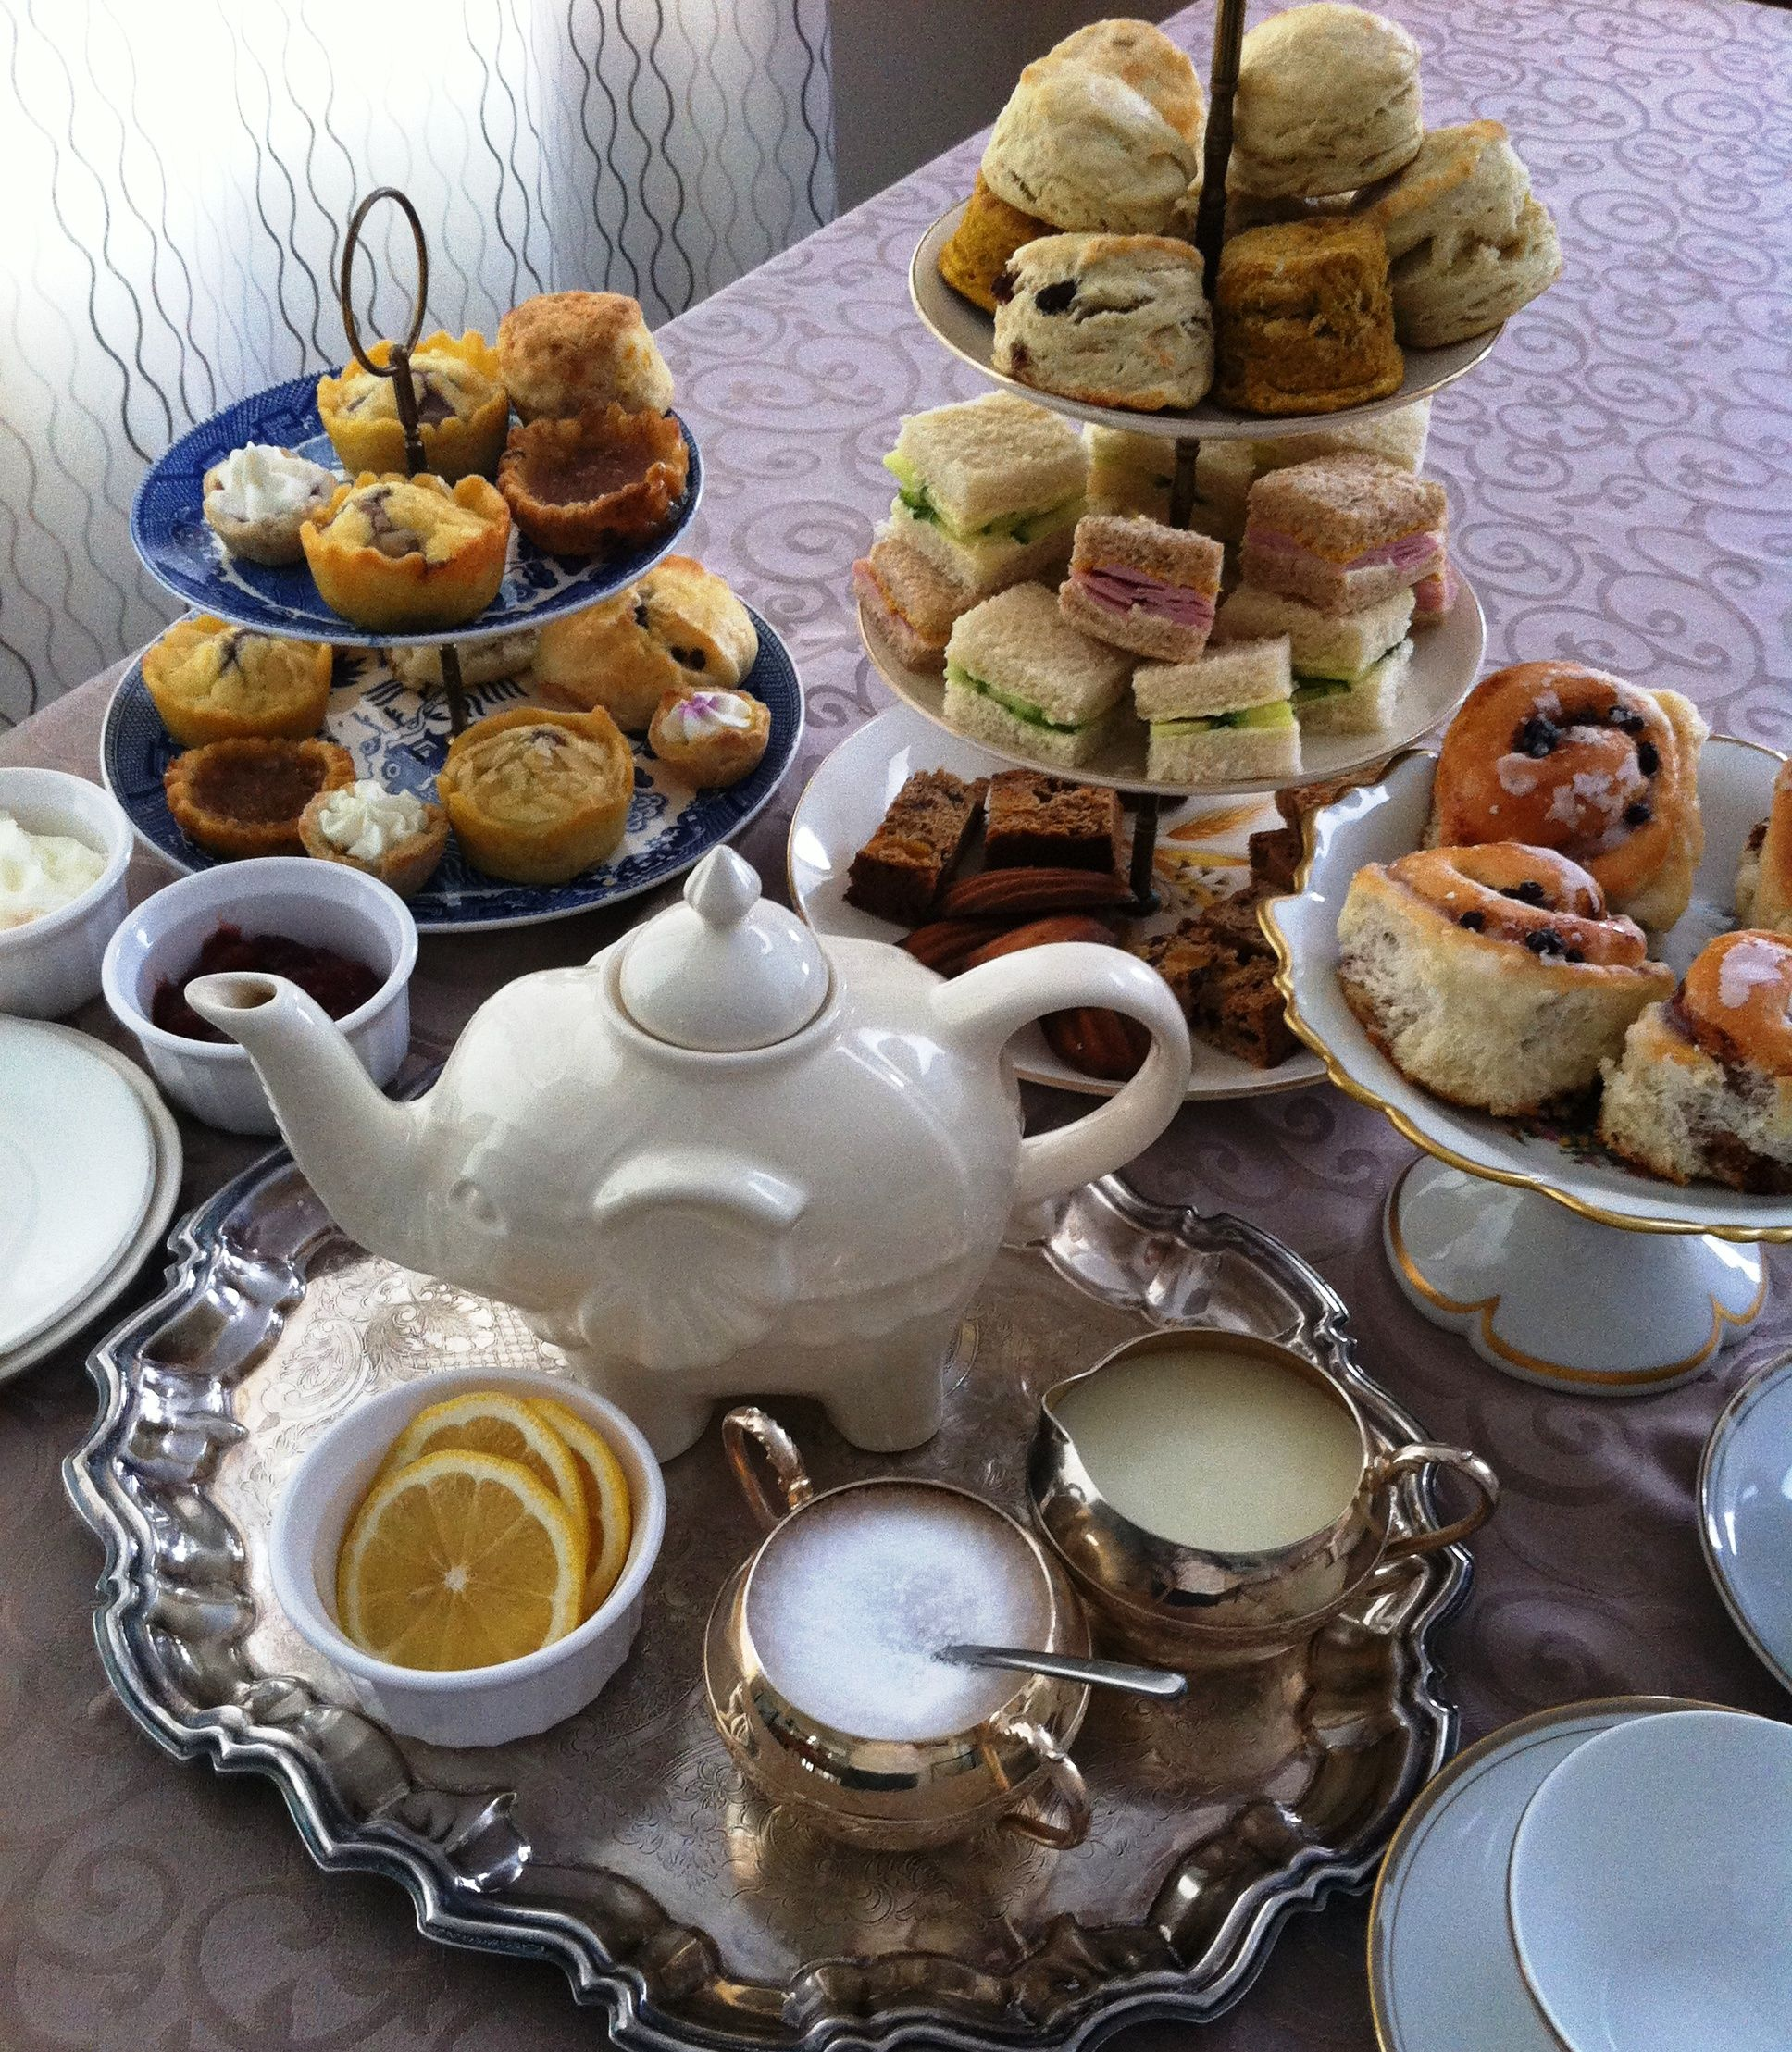 English Tea Party Decorations: Afternoon Tea, Clotted Cream